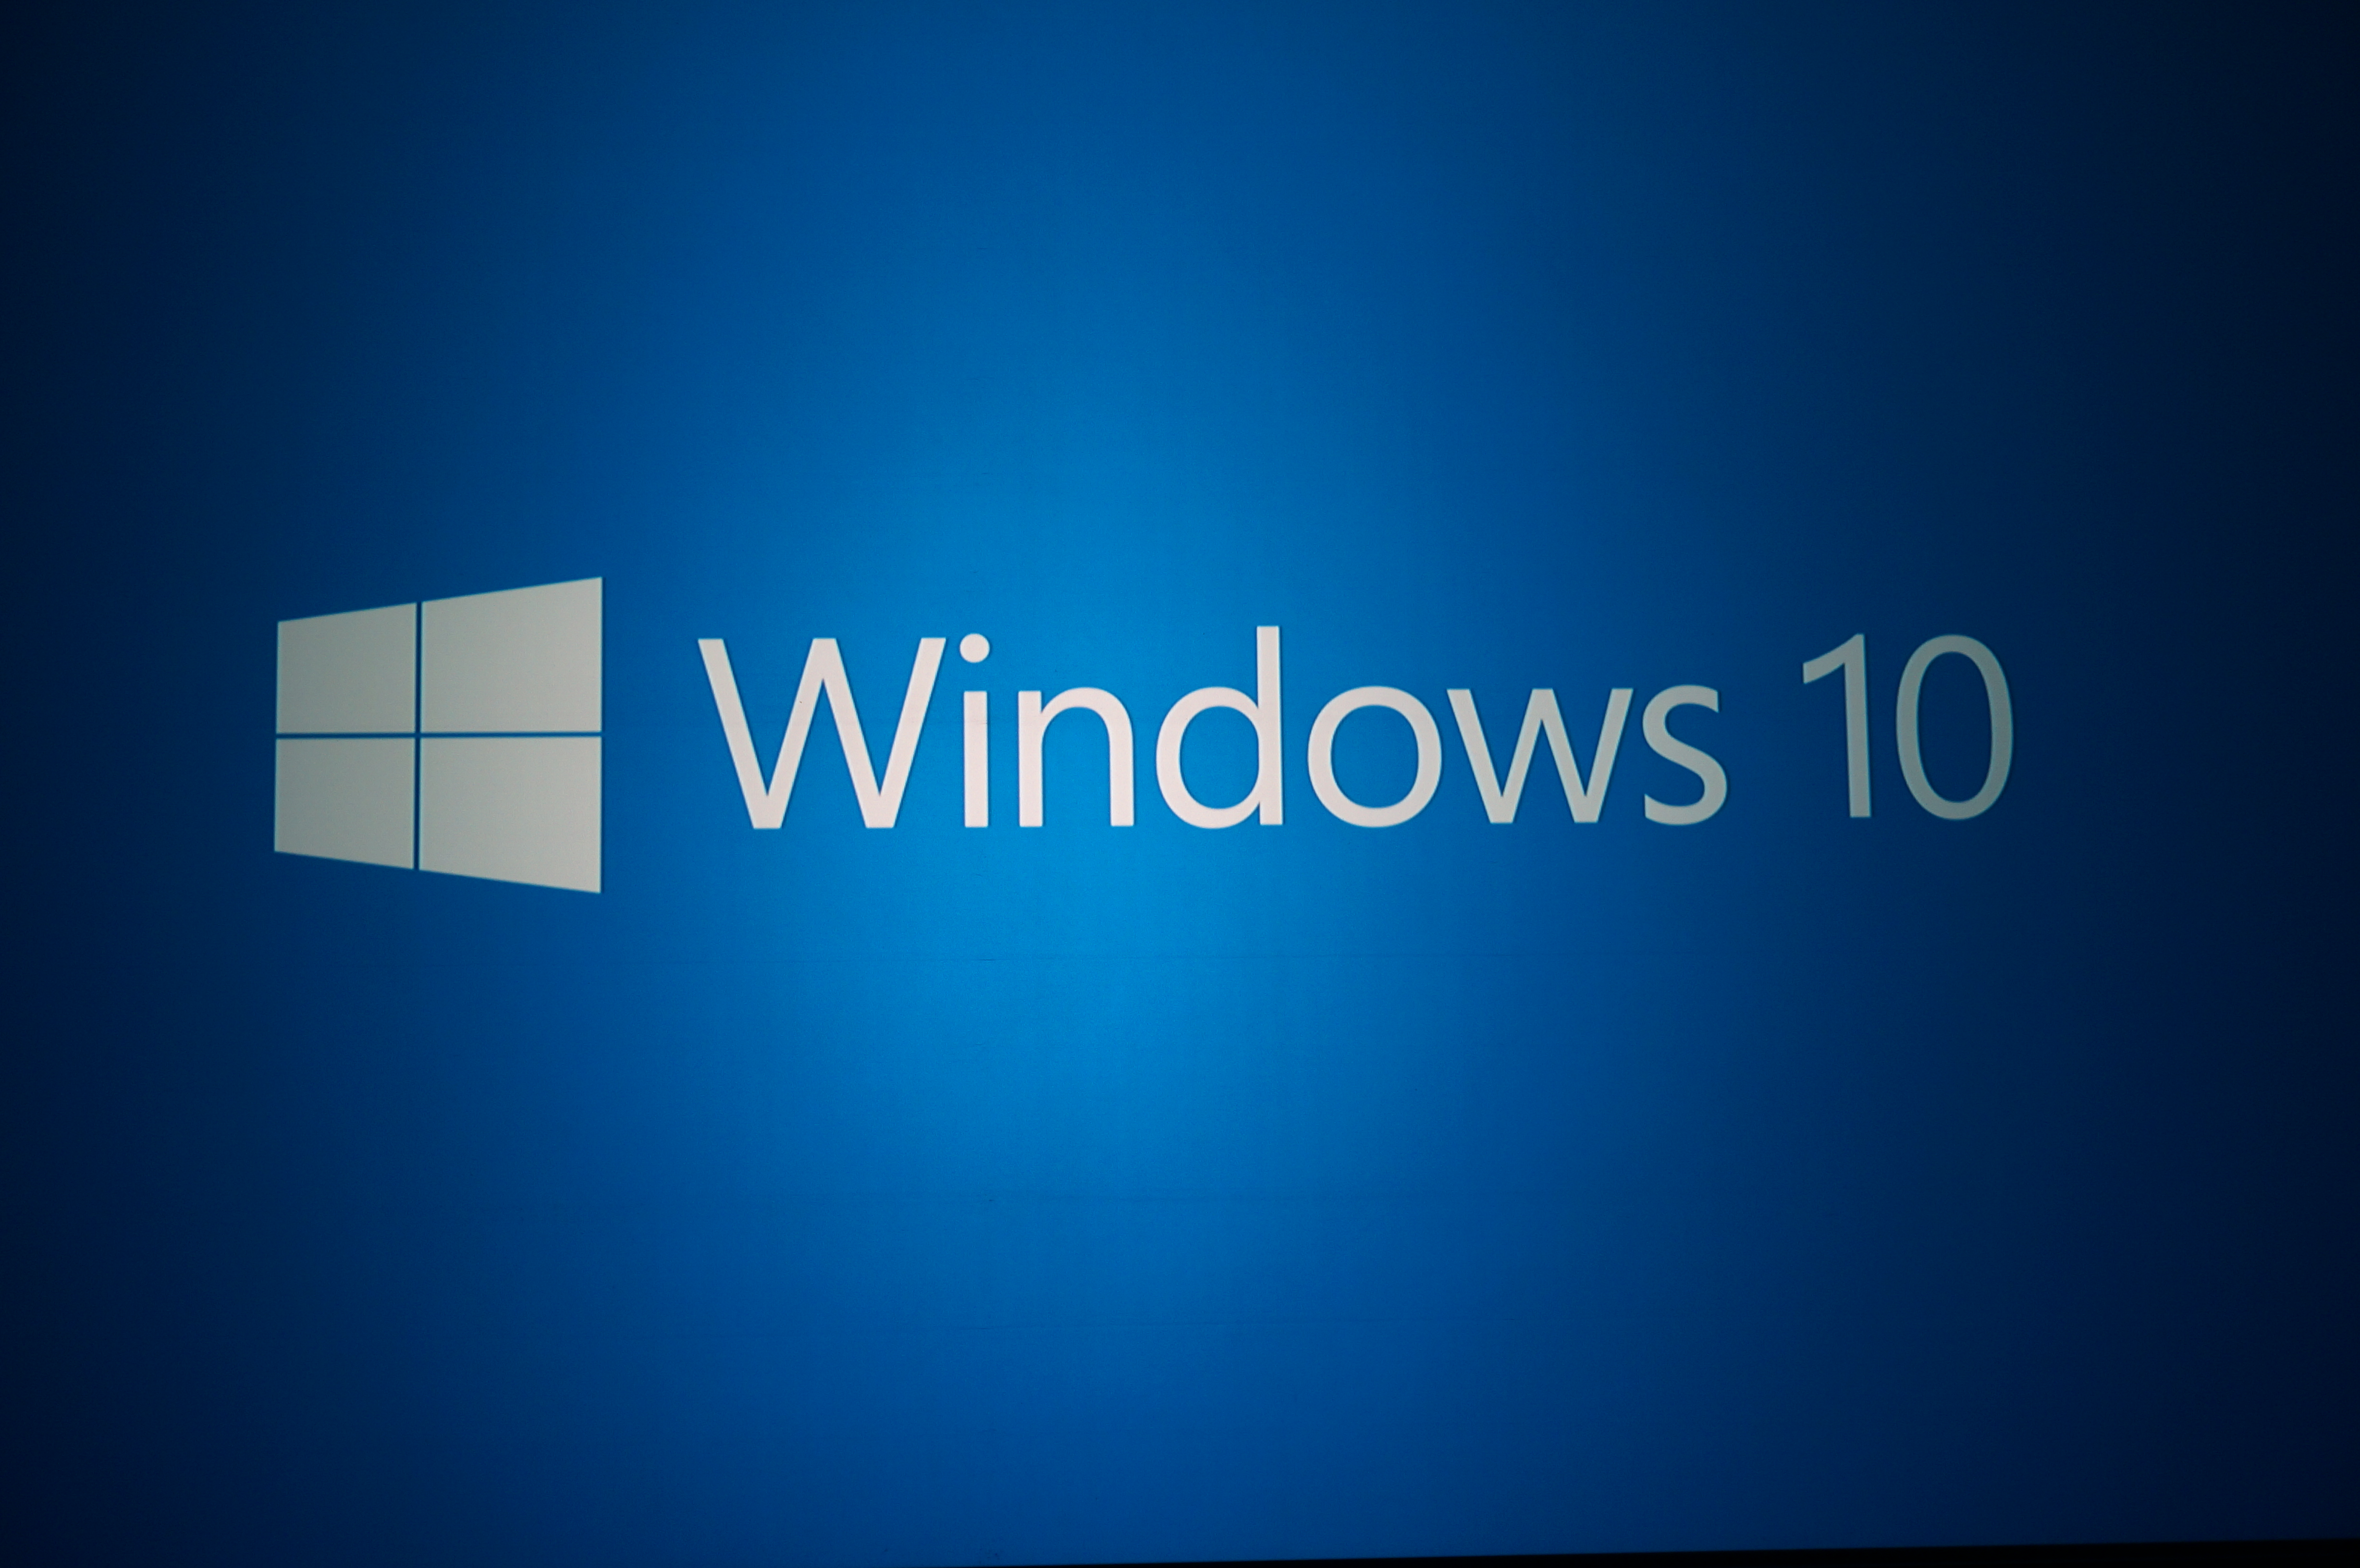 Microsoft 39 s new goal 1 billion windows 10 devices within for Best impact windows reviews